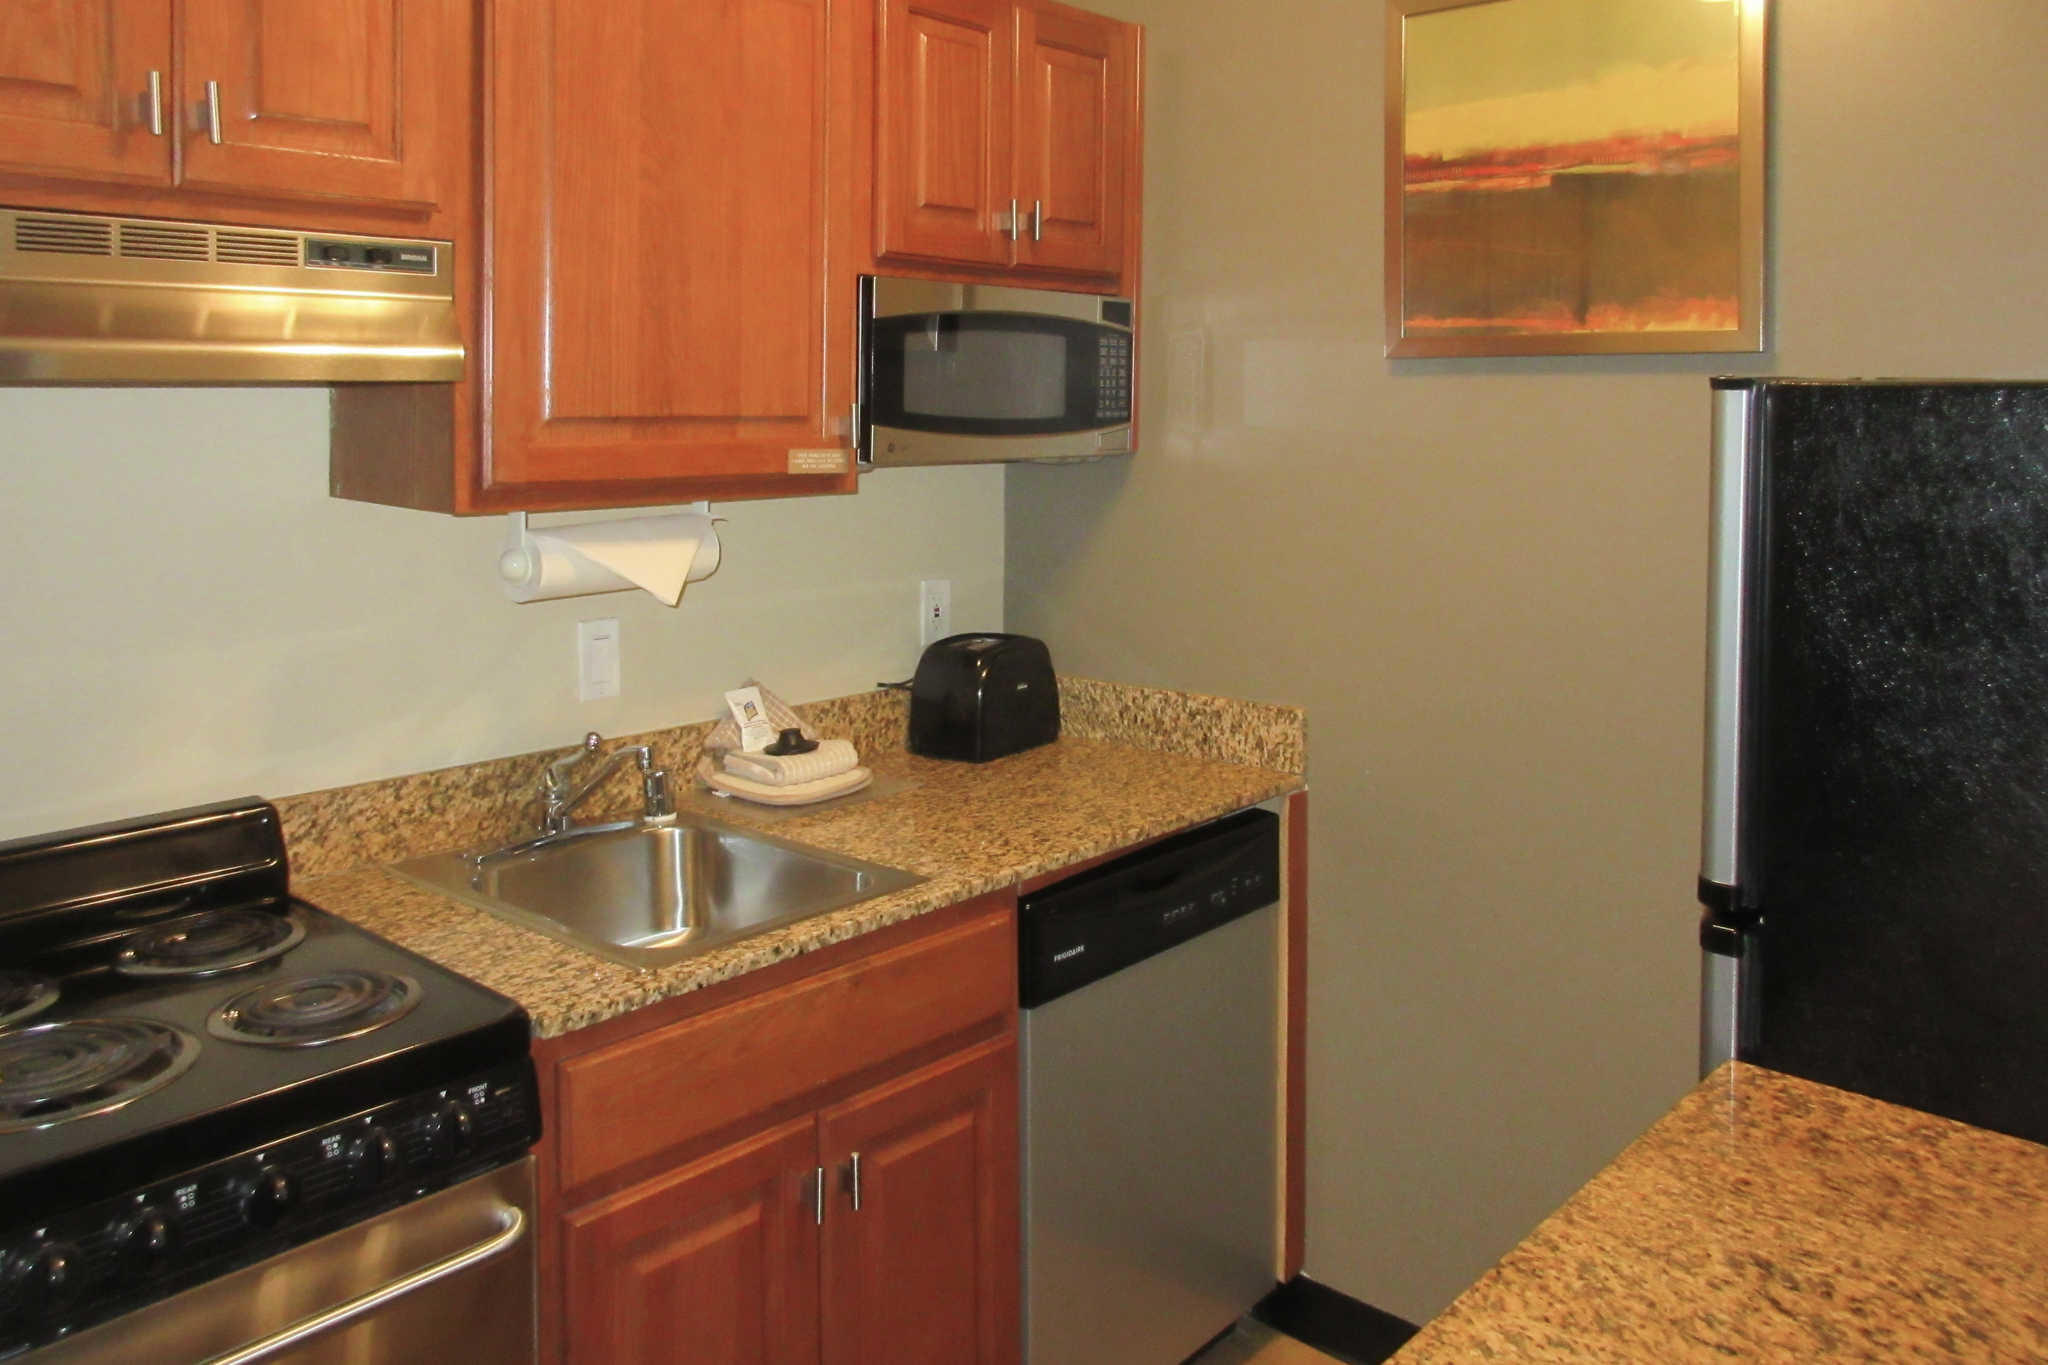 Suburban Extended Stay Hotel image 3